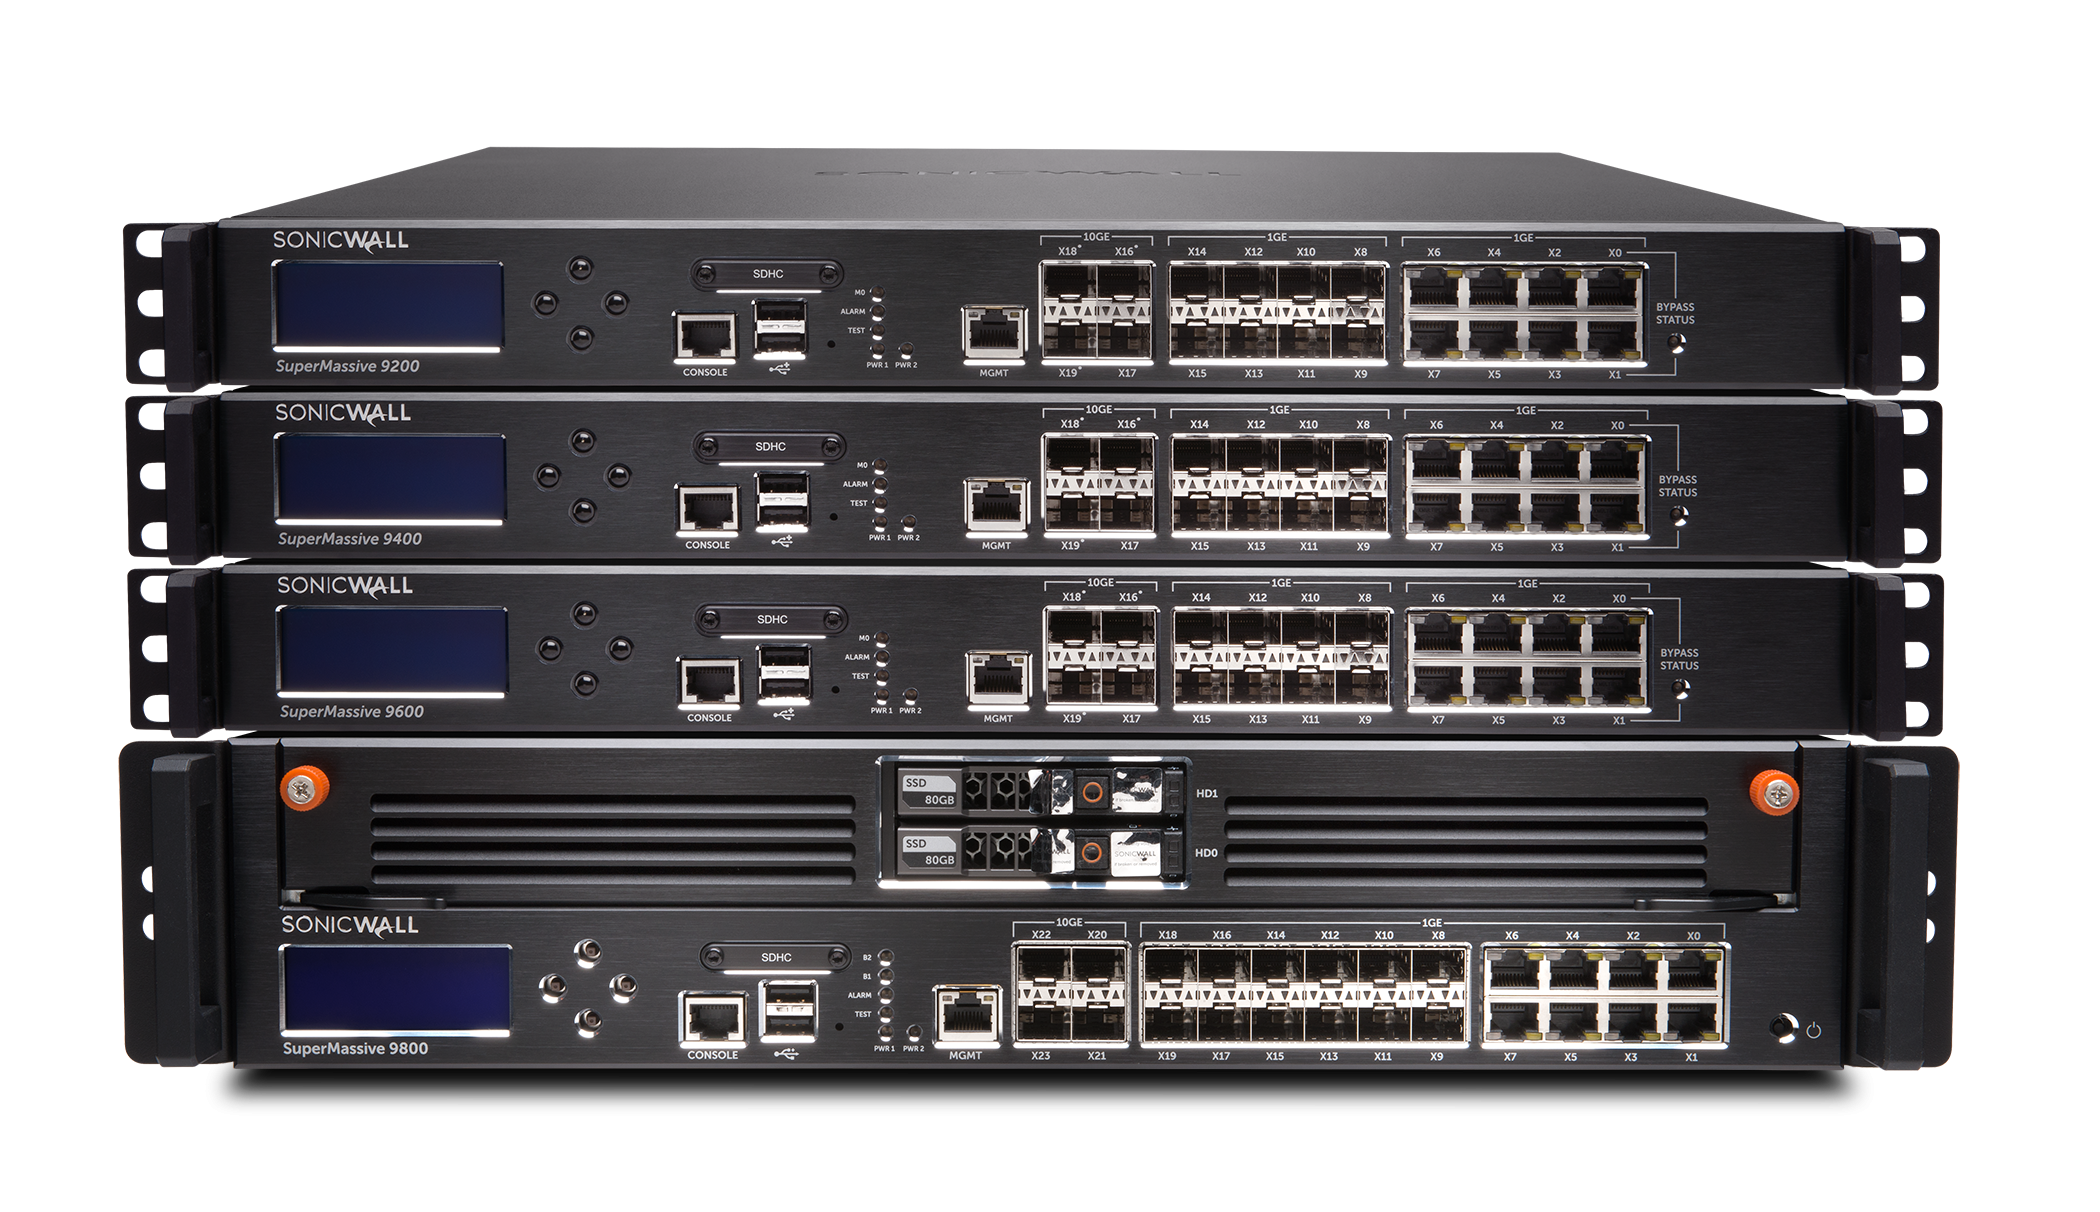 SuperMassive Series SonicWall